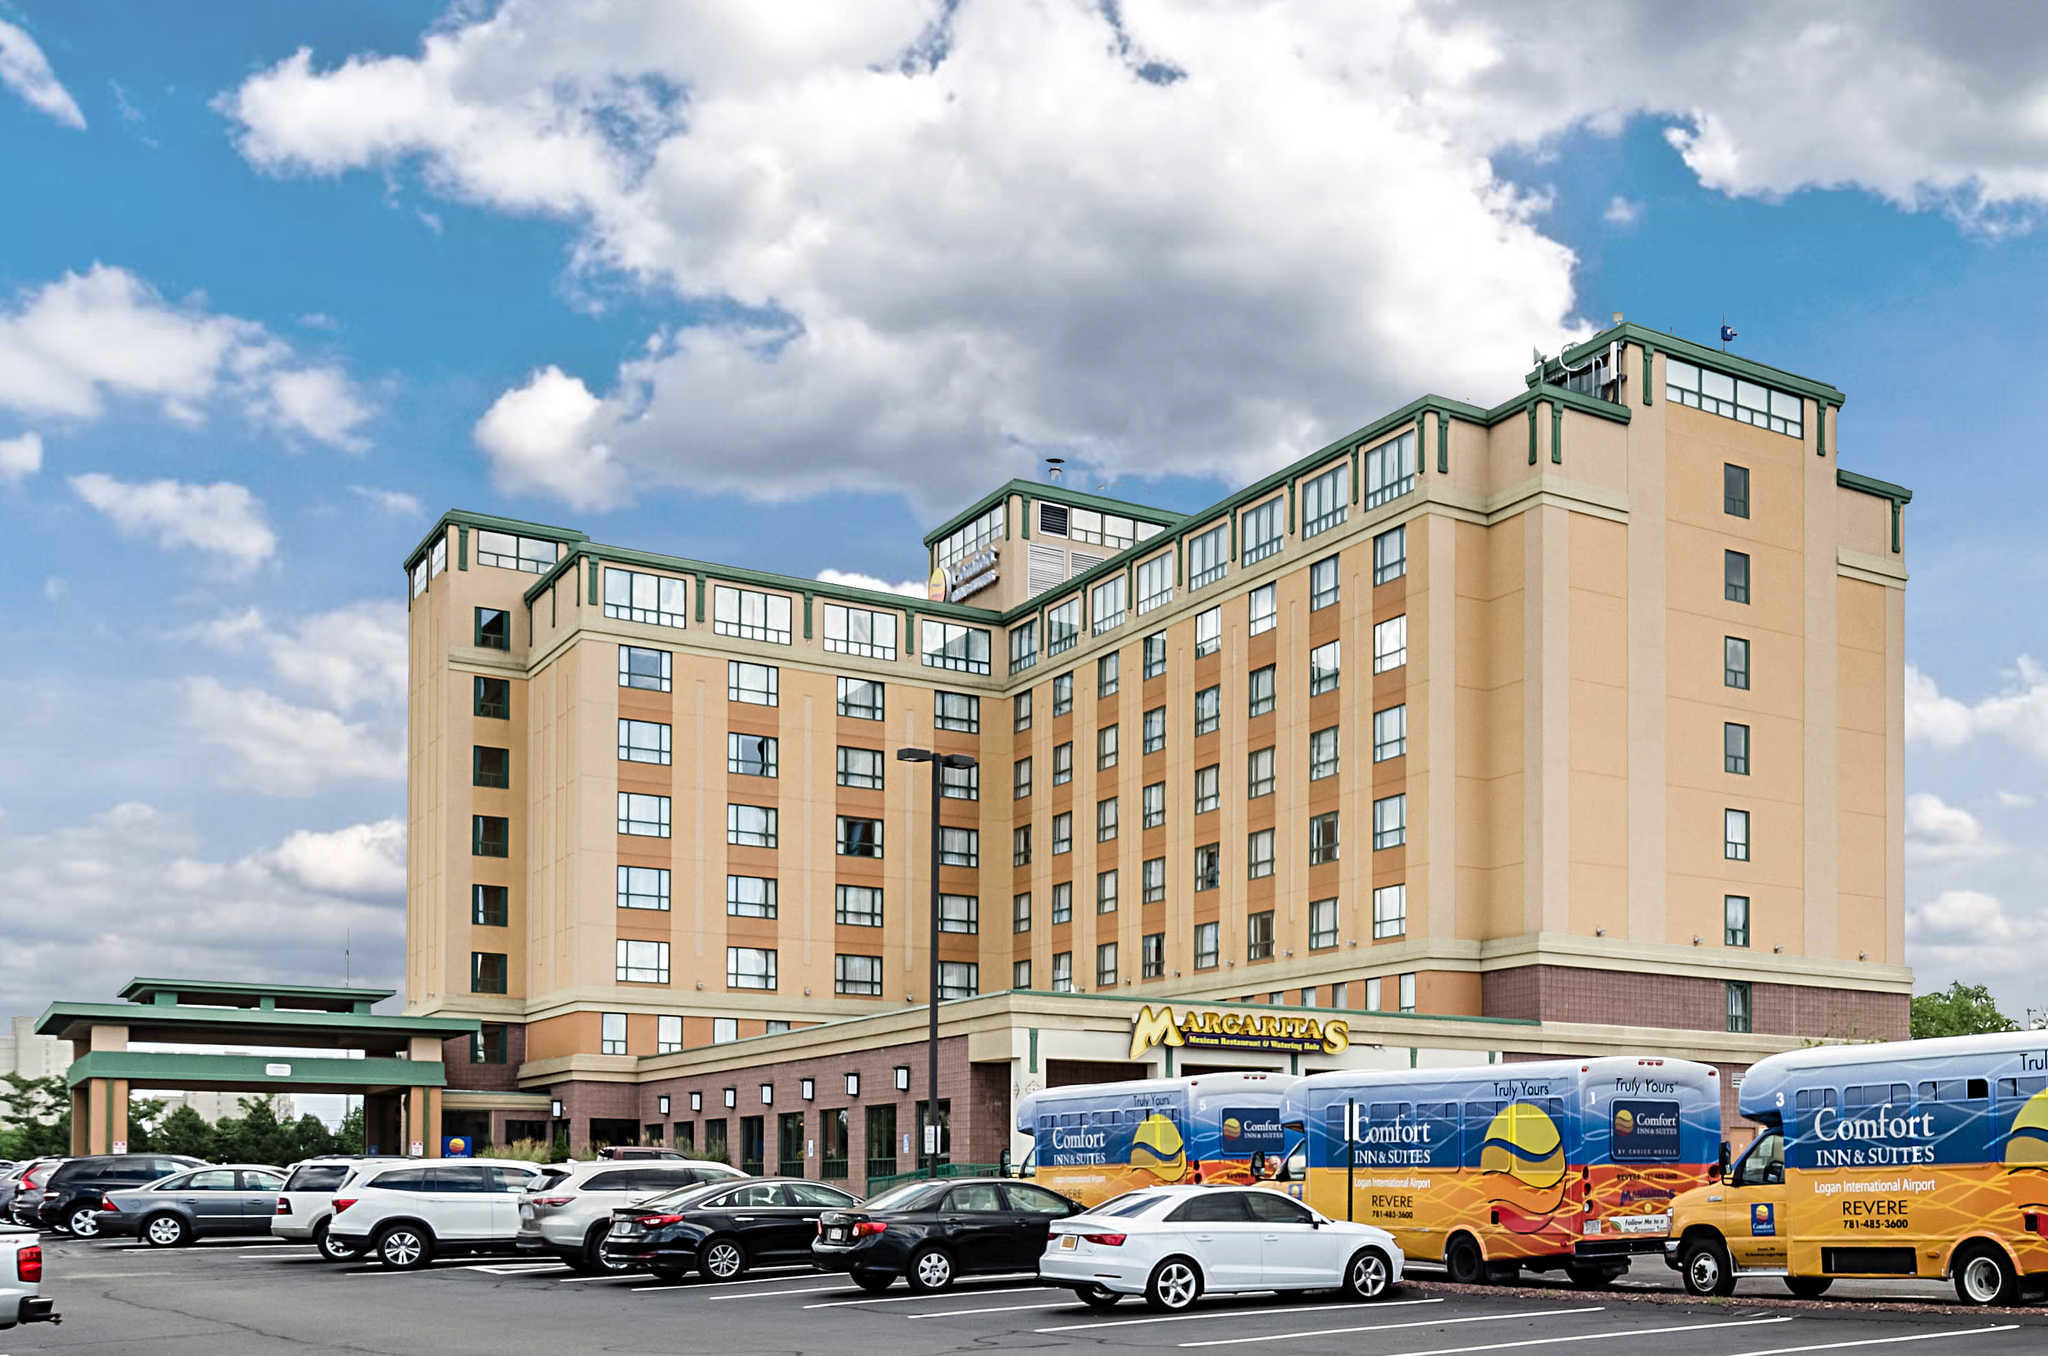 Comfort Inn Amp Suites Logan International Airport In Revere